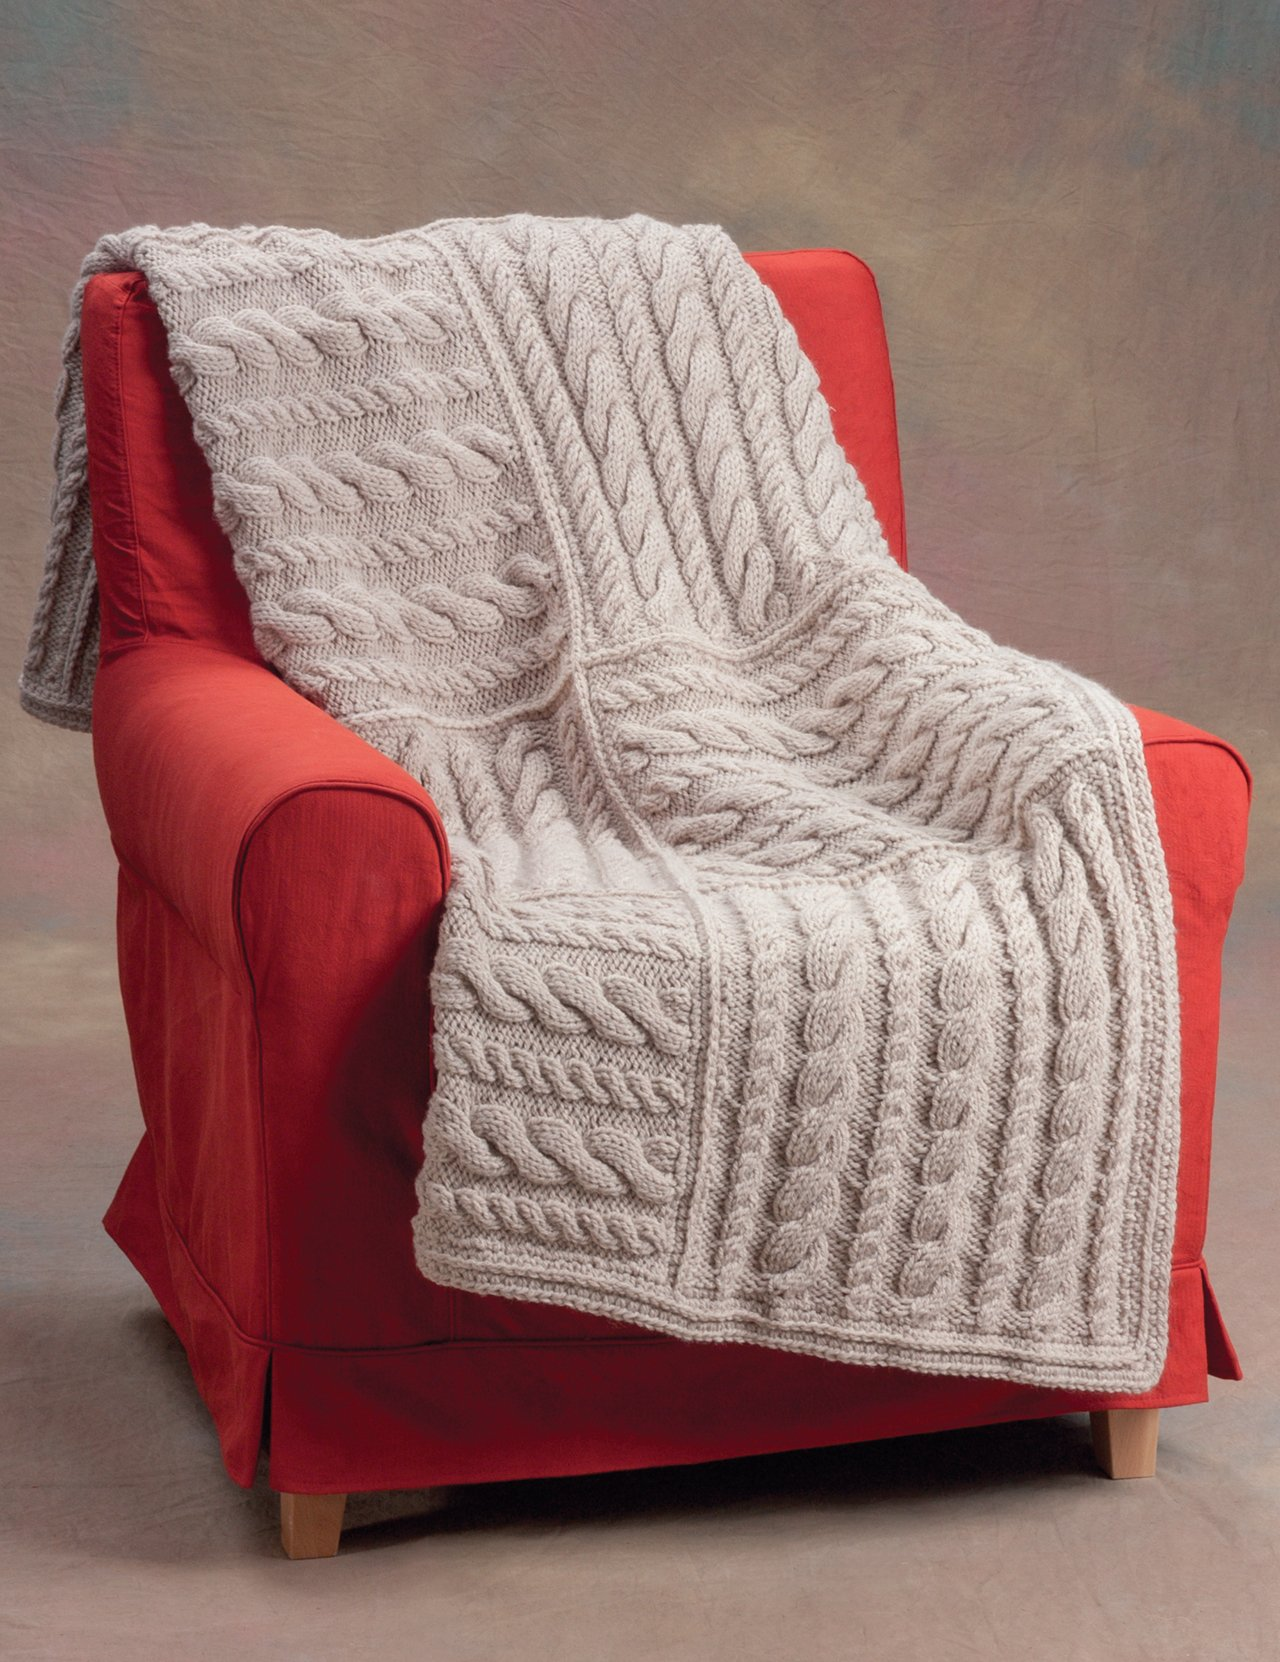 20 easy knitted blankets and throws from the staff at martingale